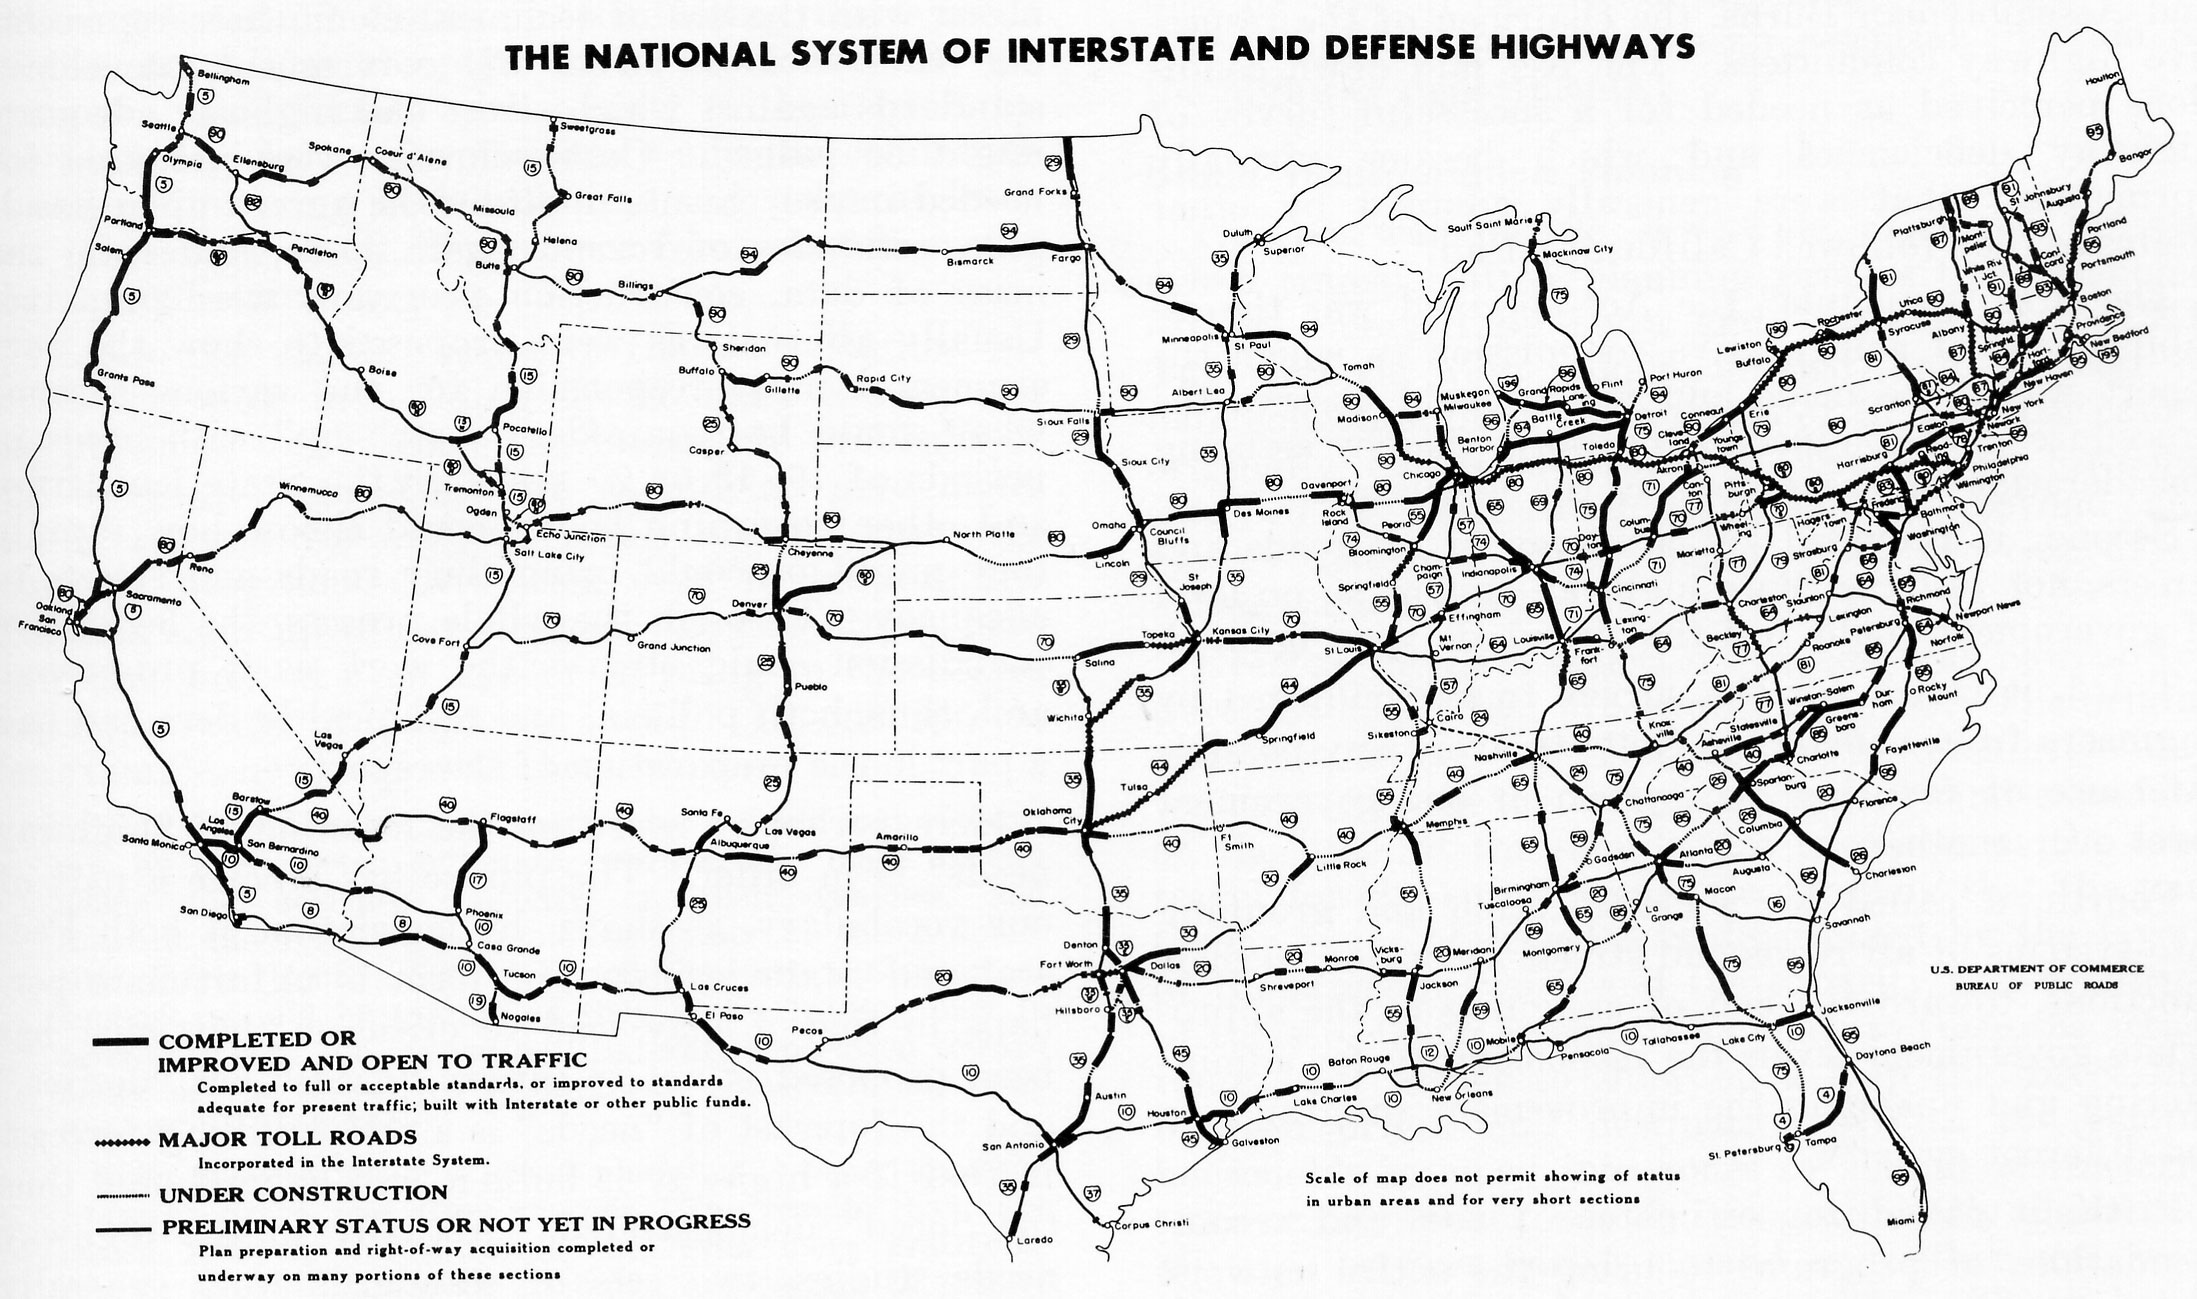 FileInterstate Highway Status Unknown Datejpg Wikimedia Commons - Map of highways in us